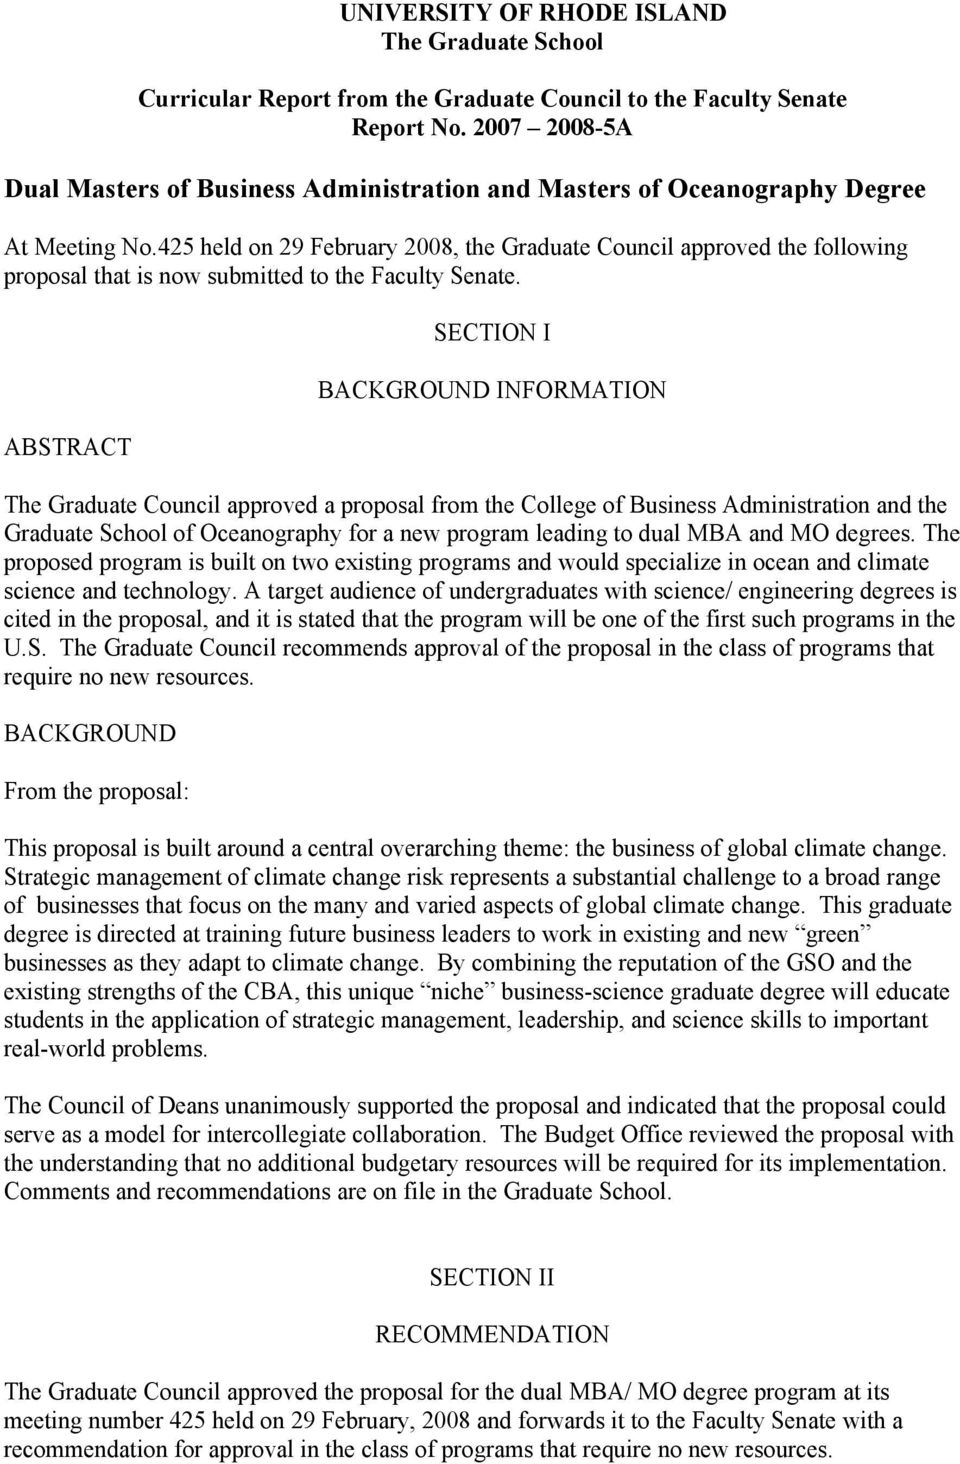 425 held on 29 February 2008, the Graduate Council approved the following proposal that is now submitted to the Faculty Senate.